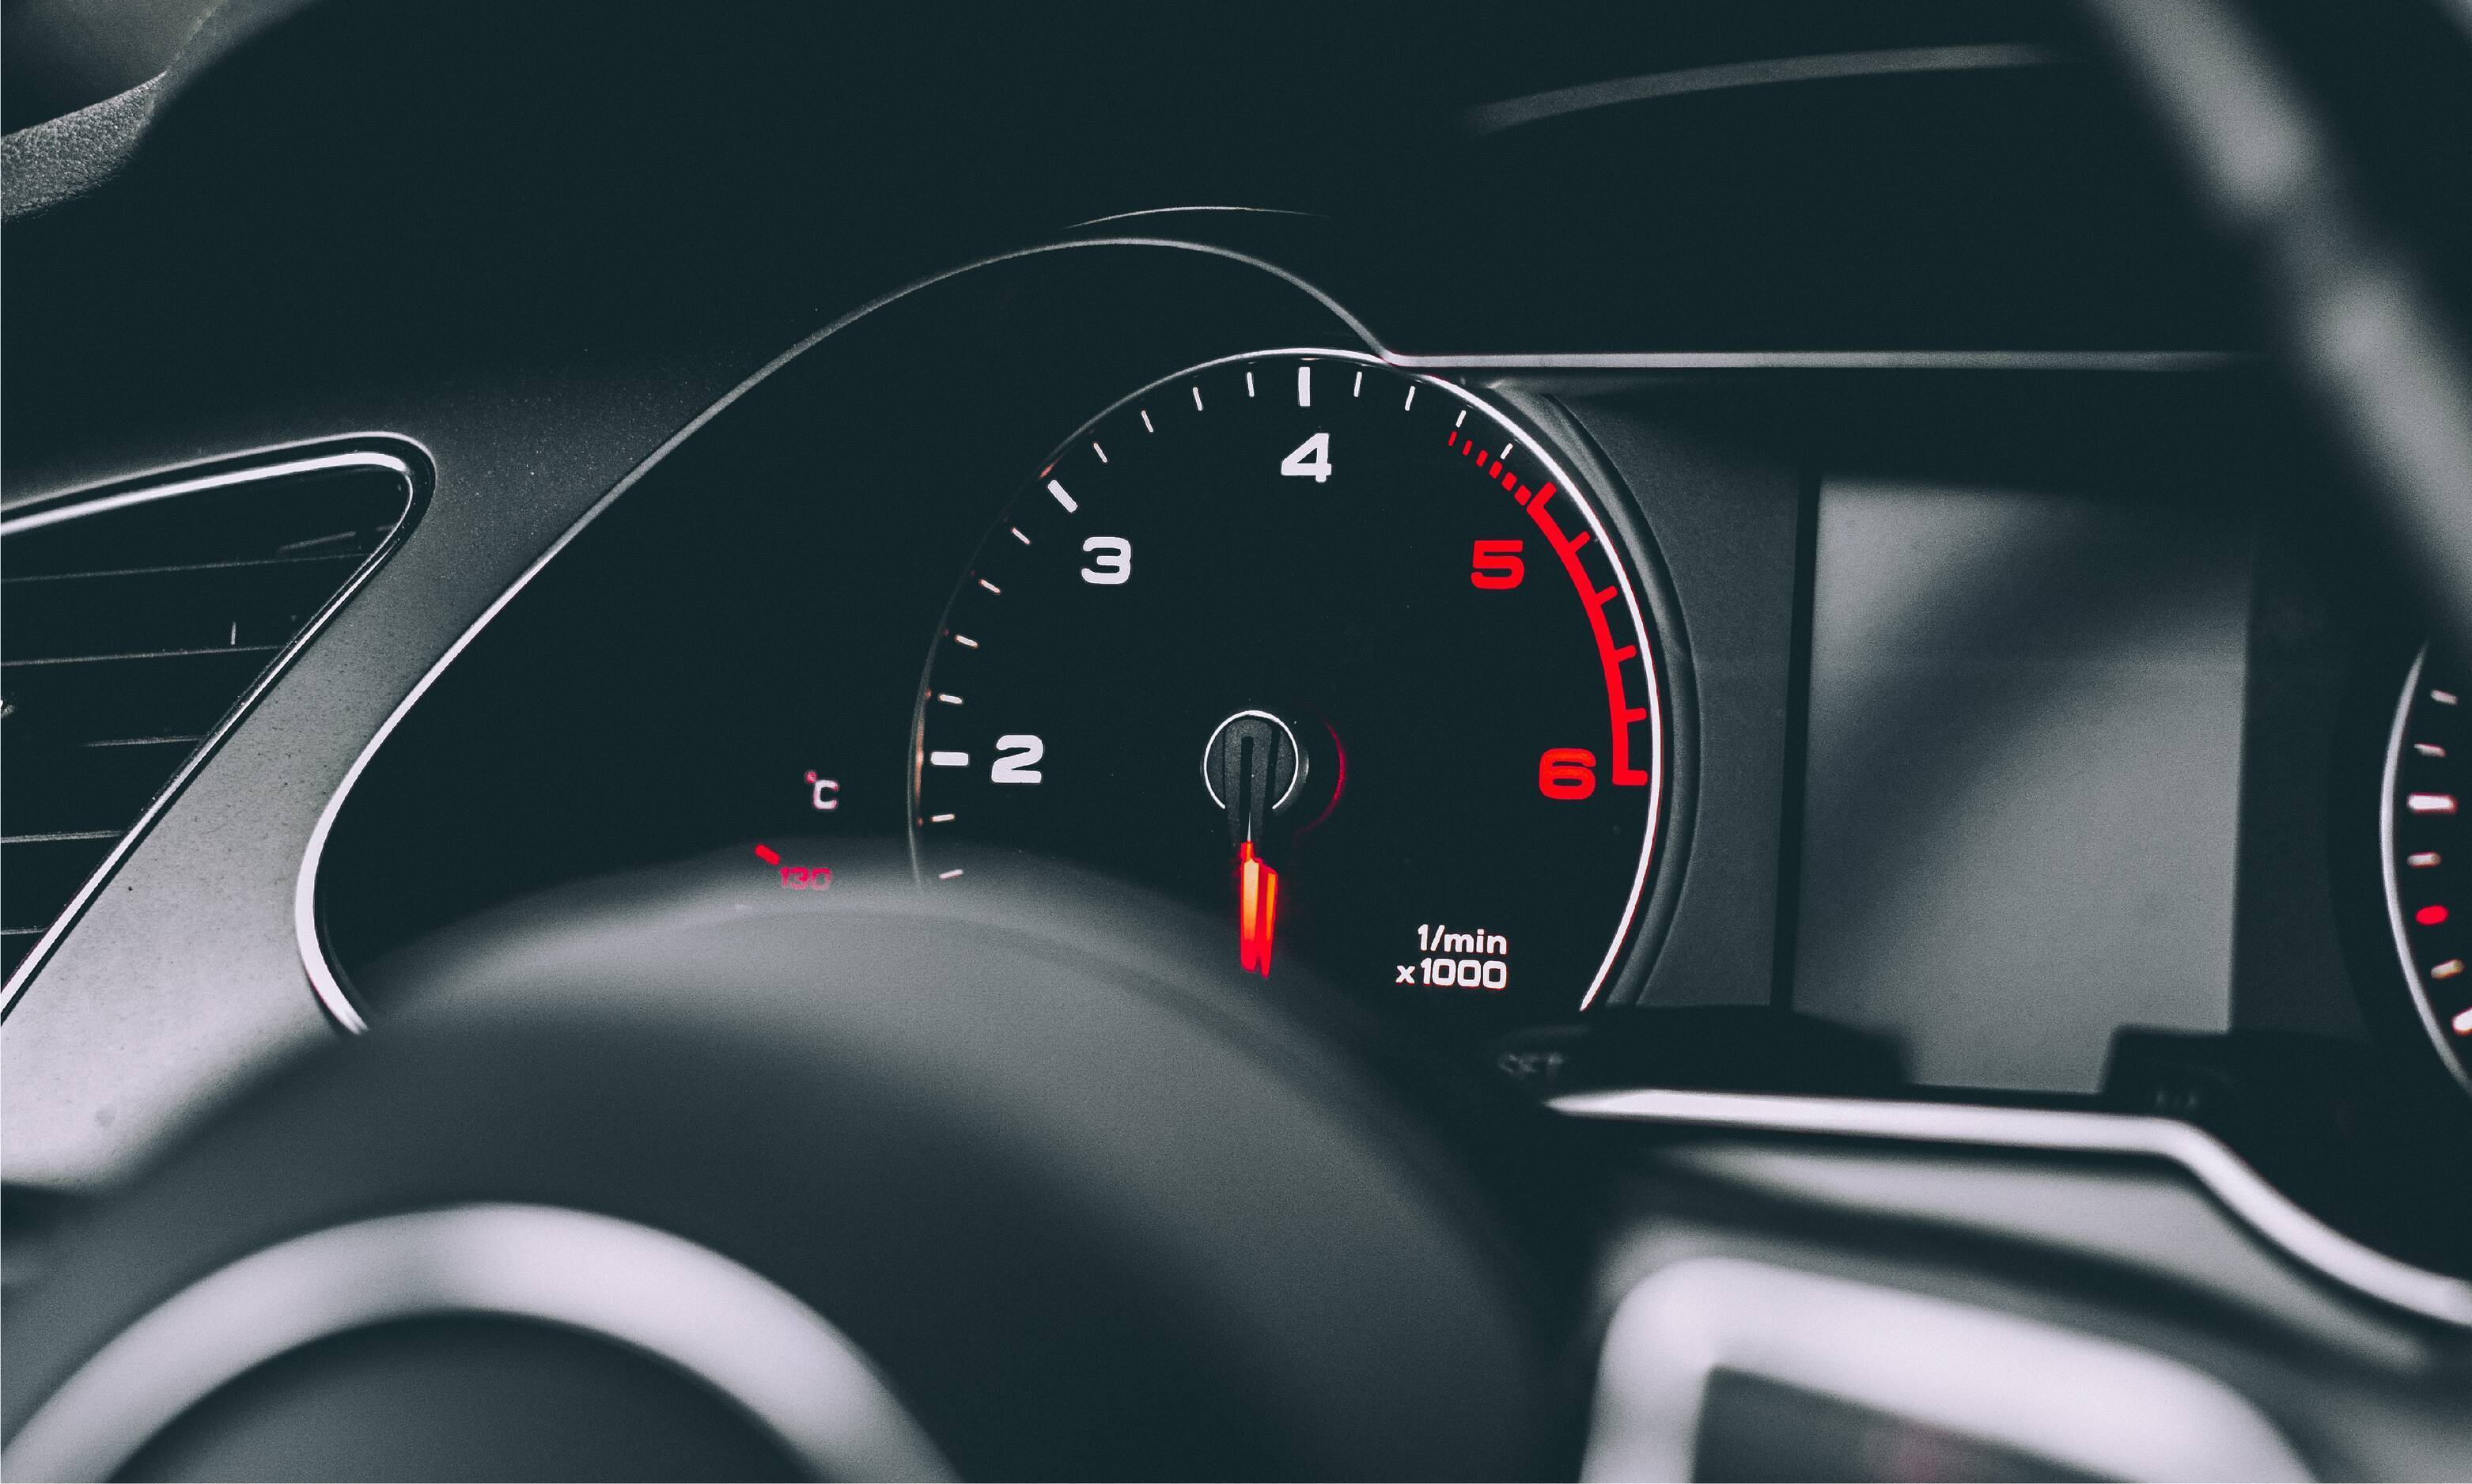 Photo of a tachometer on a car looking through the steering wheel